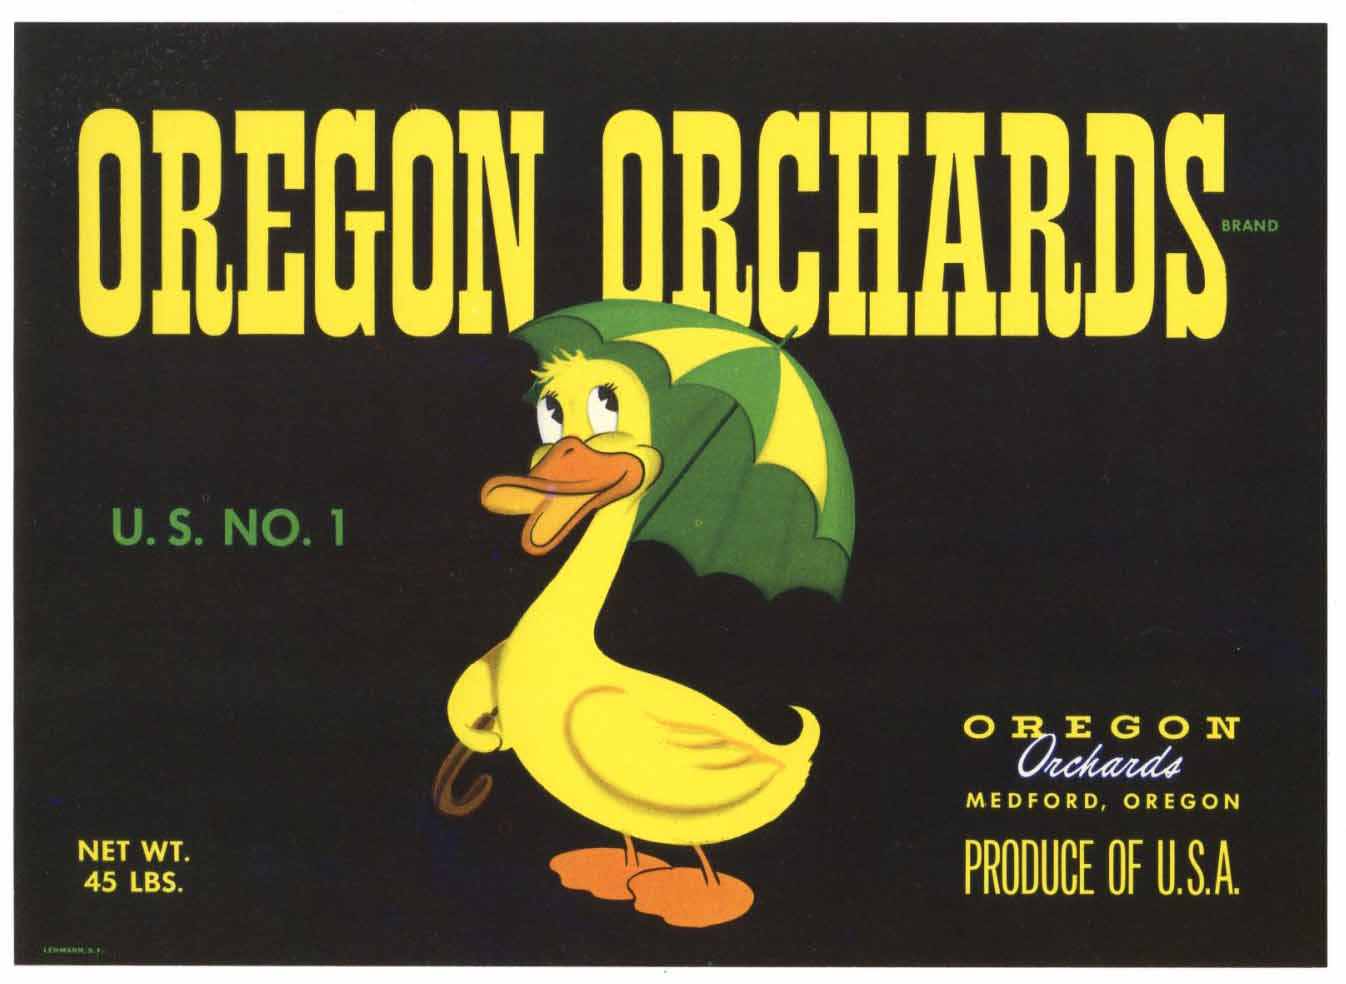 Oregon Orchards Brand Vintage Medford Oregon Pear Crate Label d